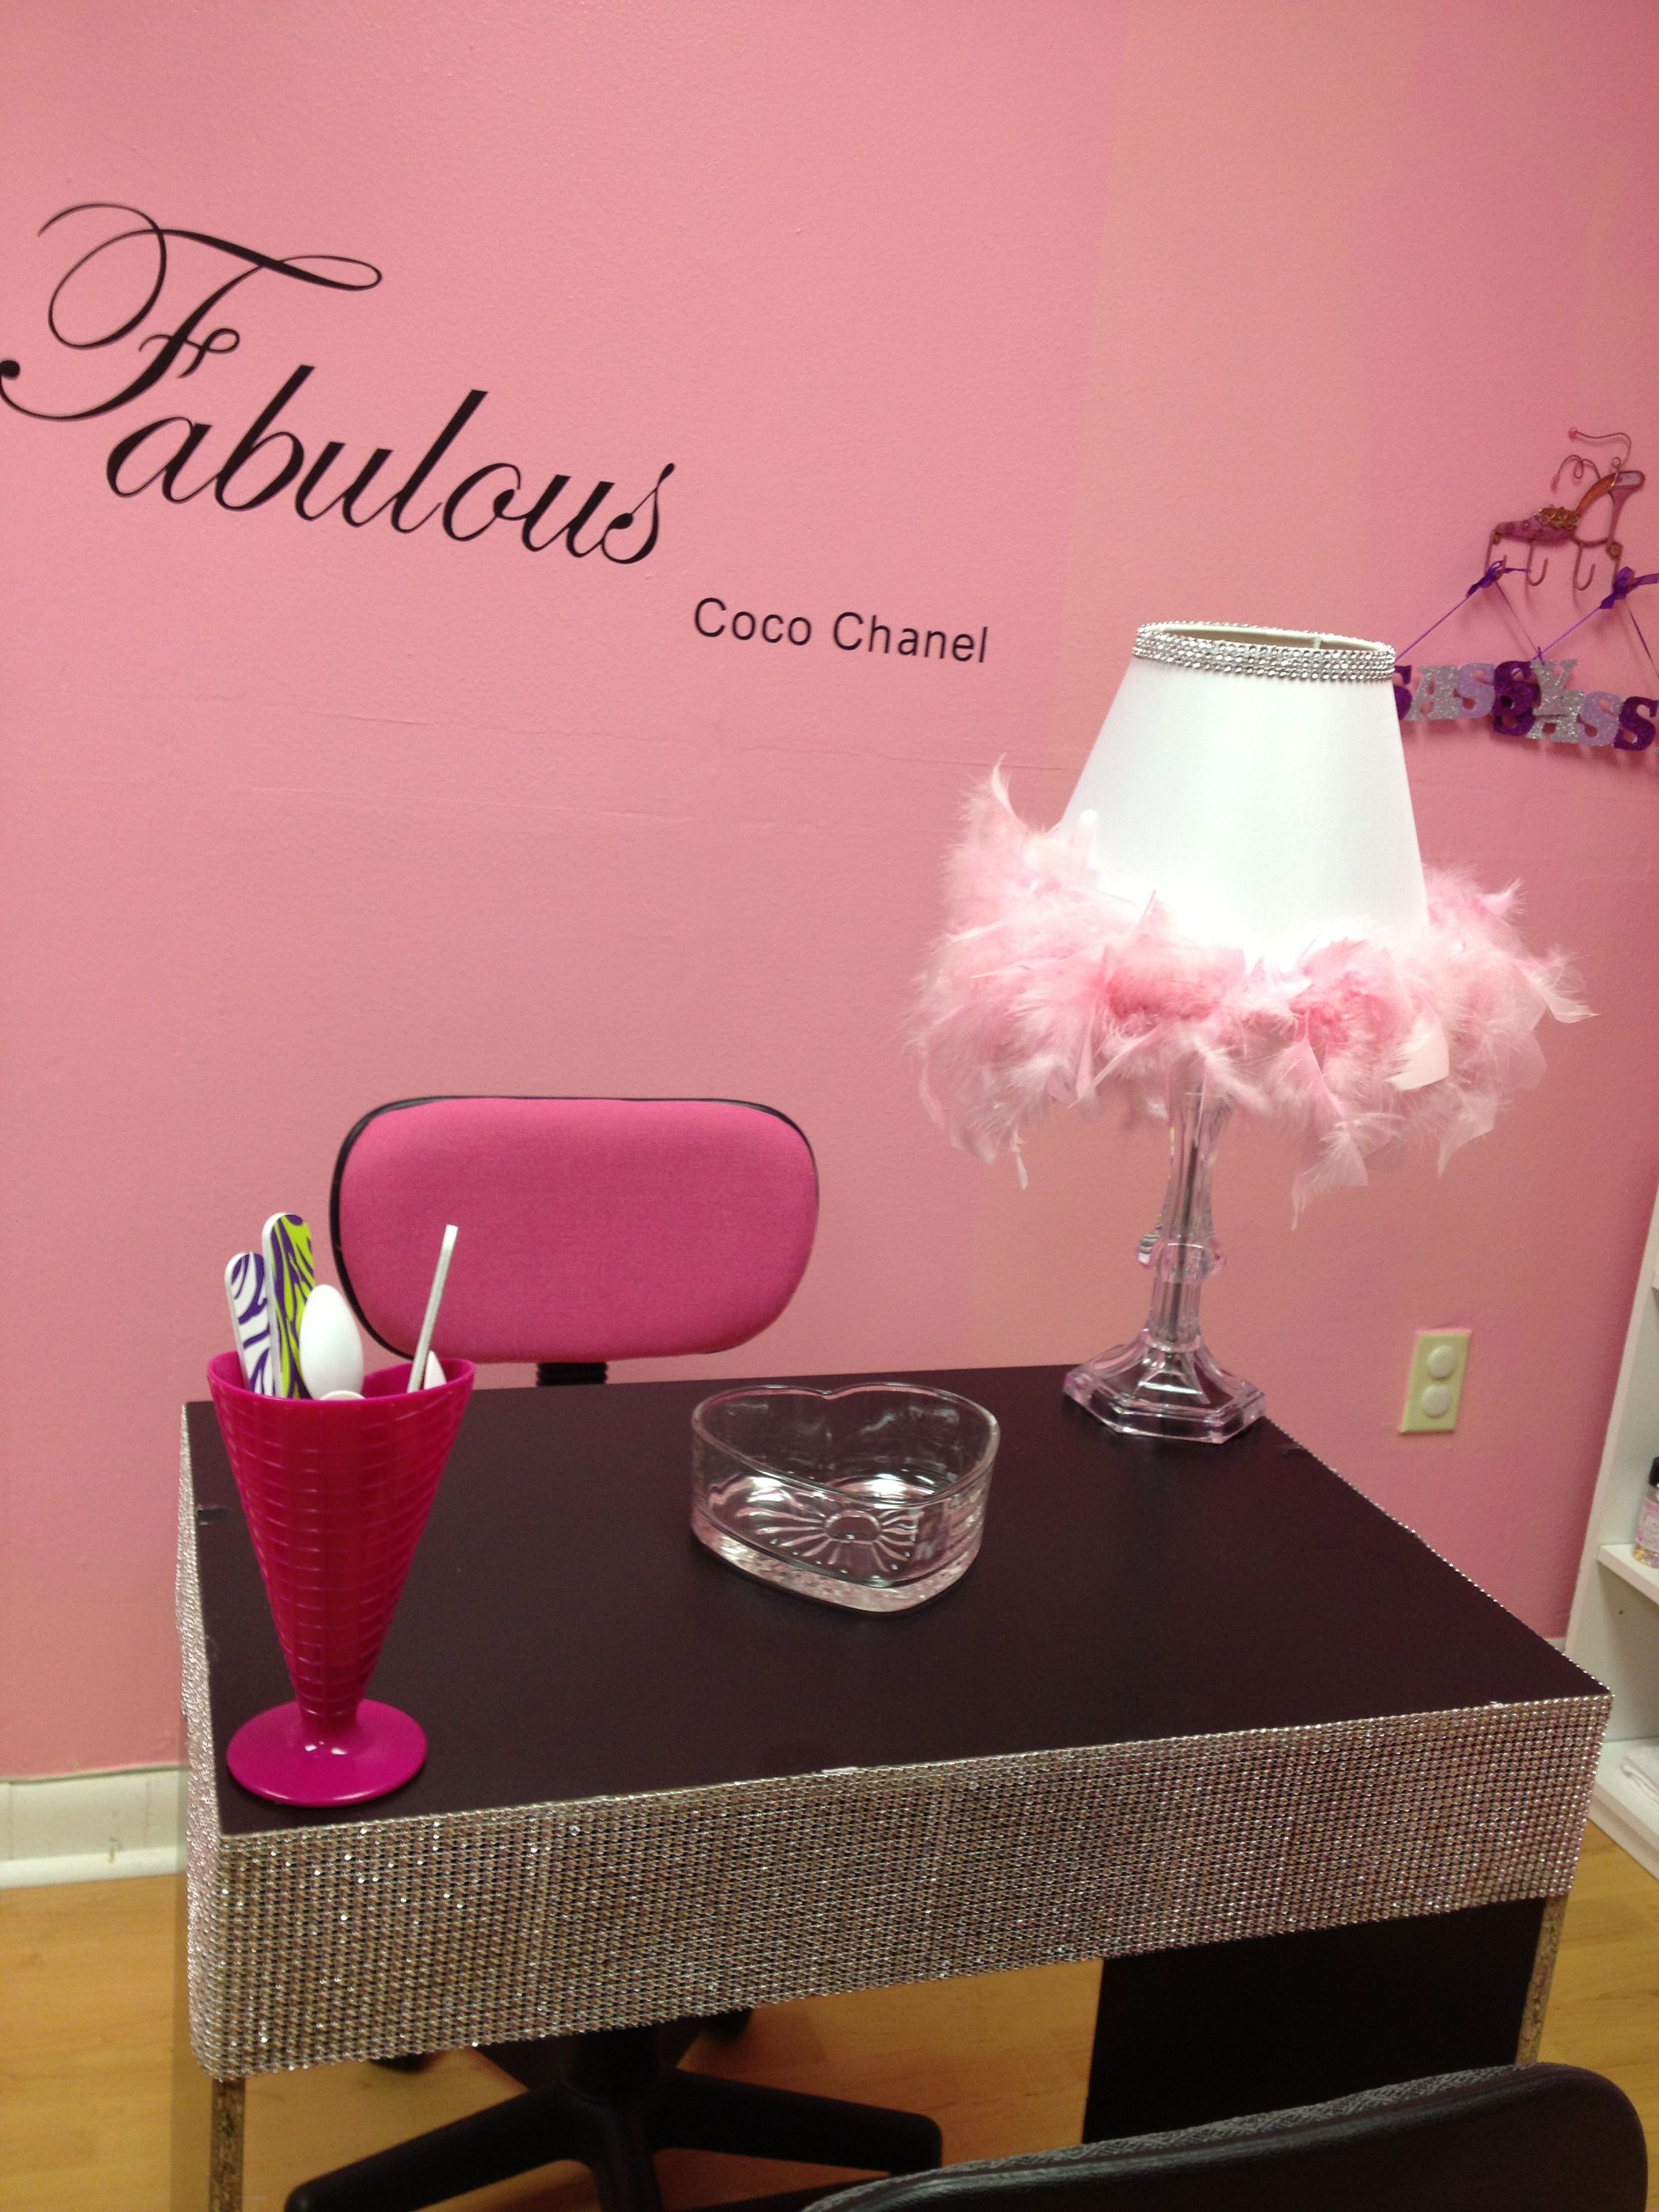 My Bath Bakery Spa Nail Studio for Kids 12 and under. Visit www ...